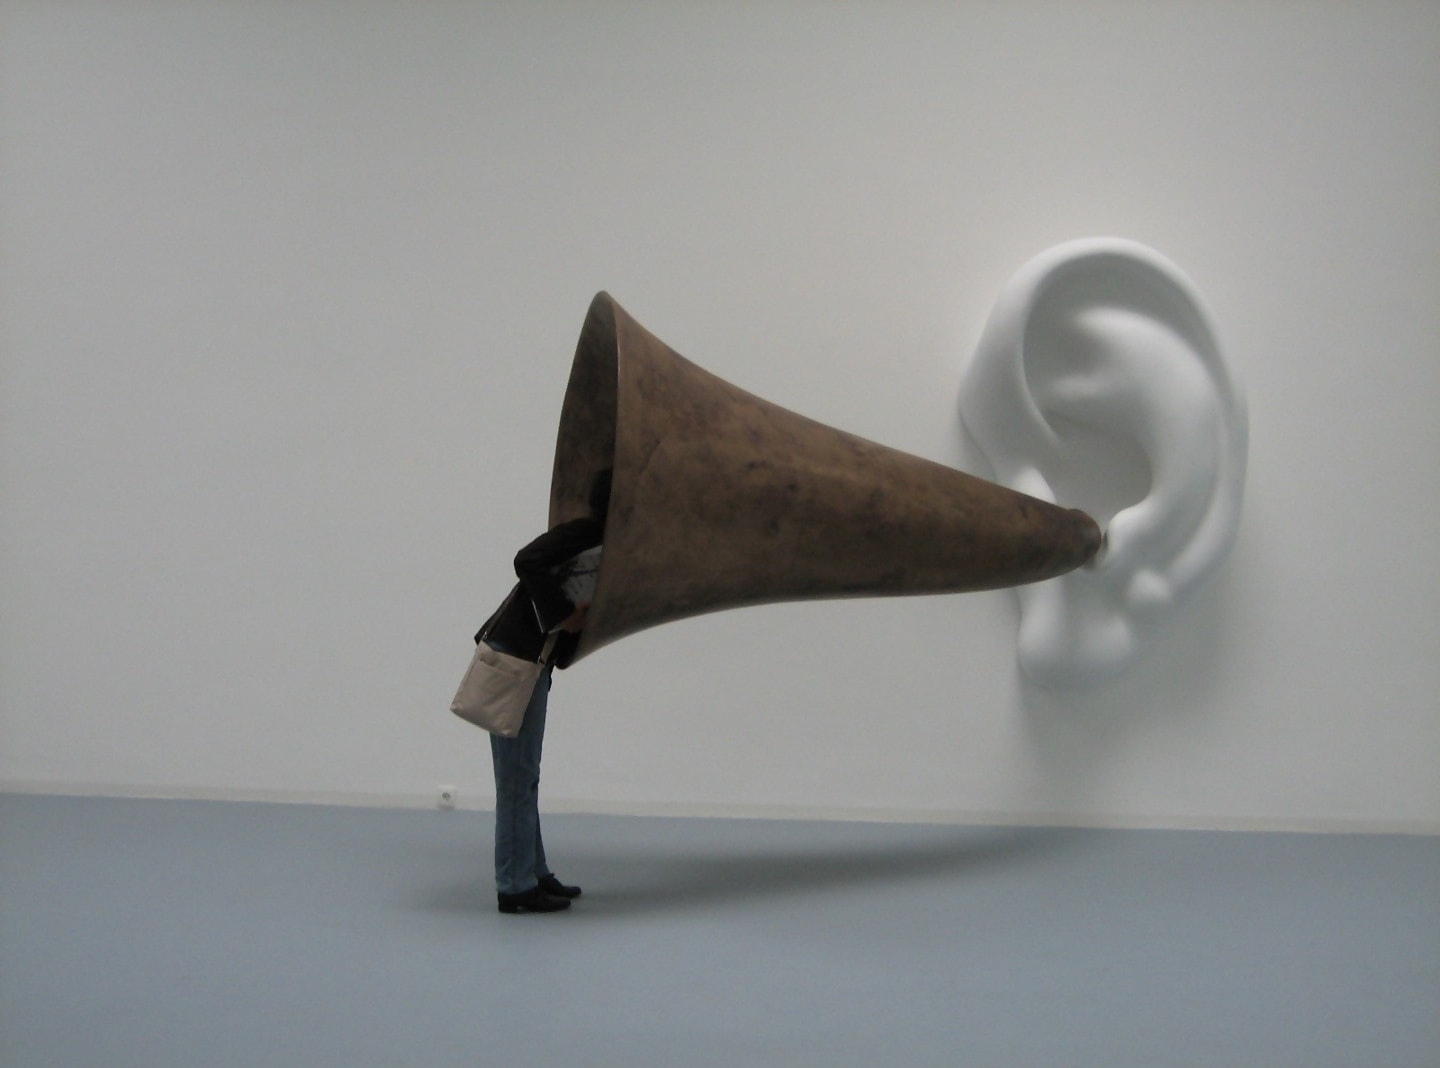 Beethoven's Trumpet (With Ear), Opus 127 by John Baldessari